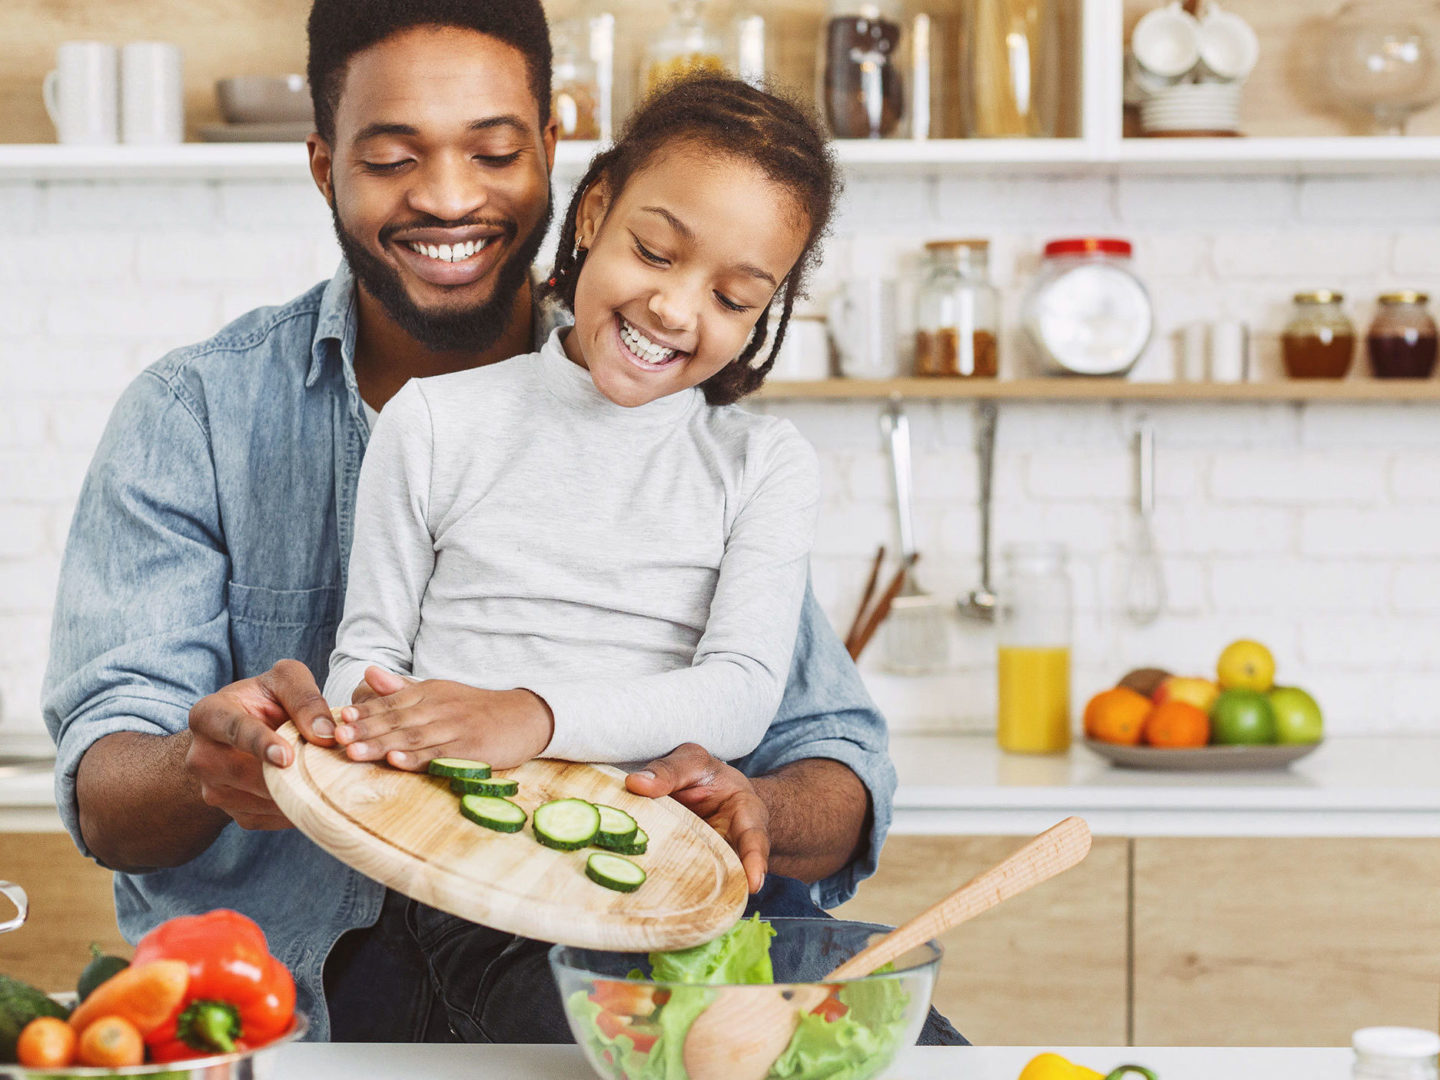 Girl and her father making salad together